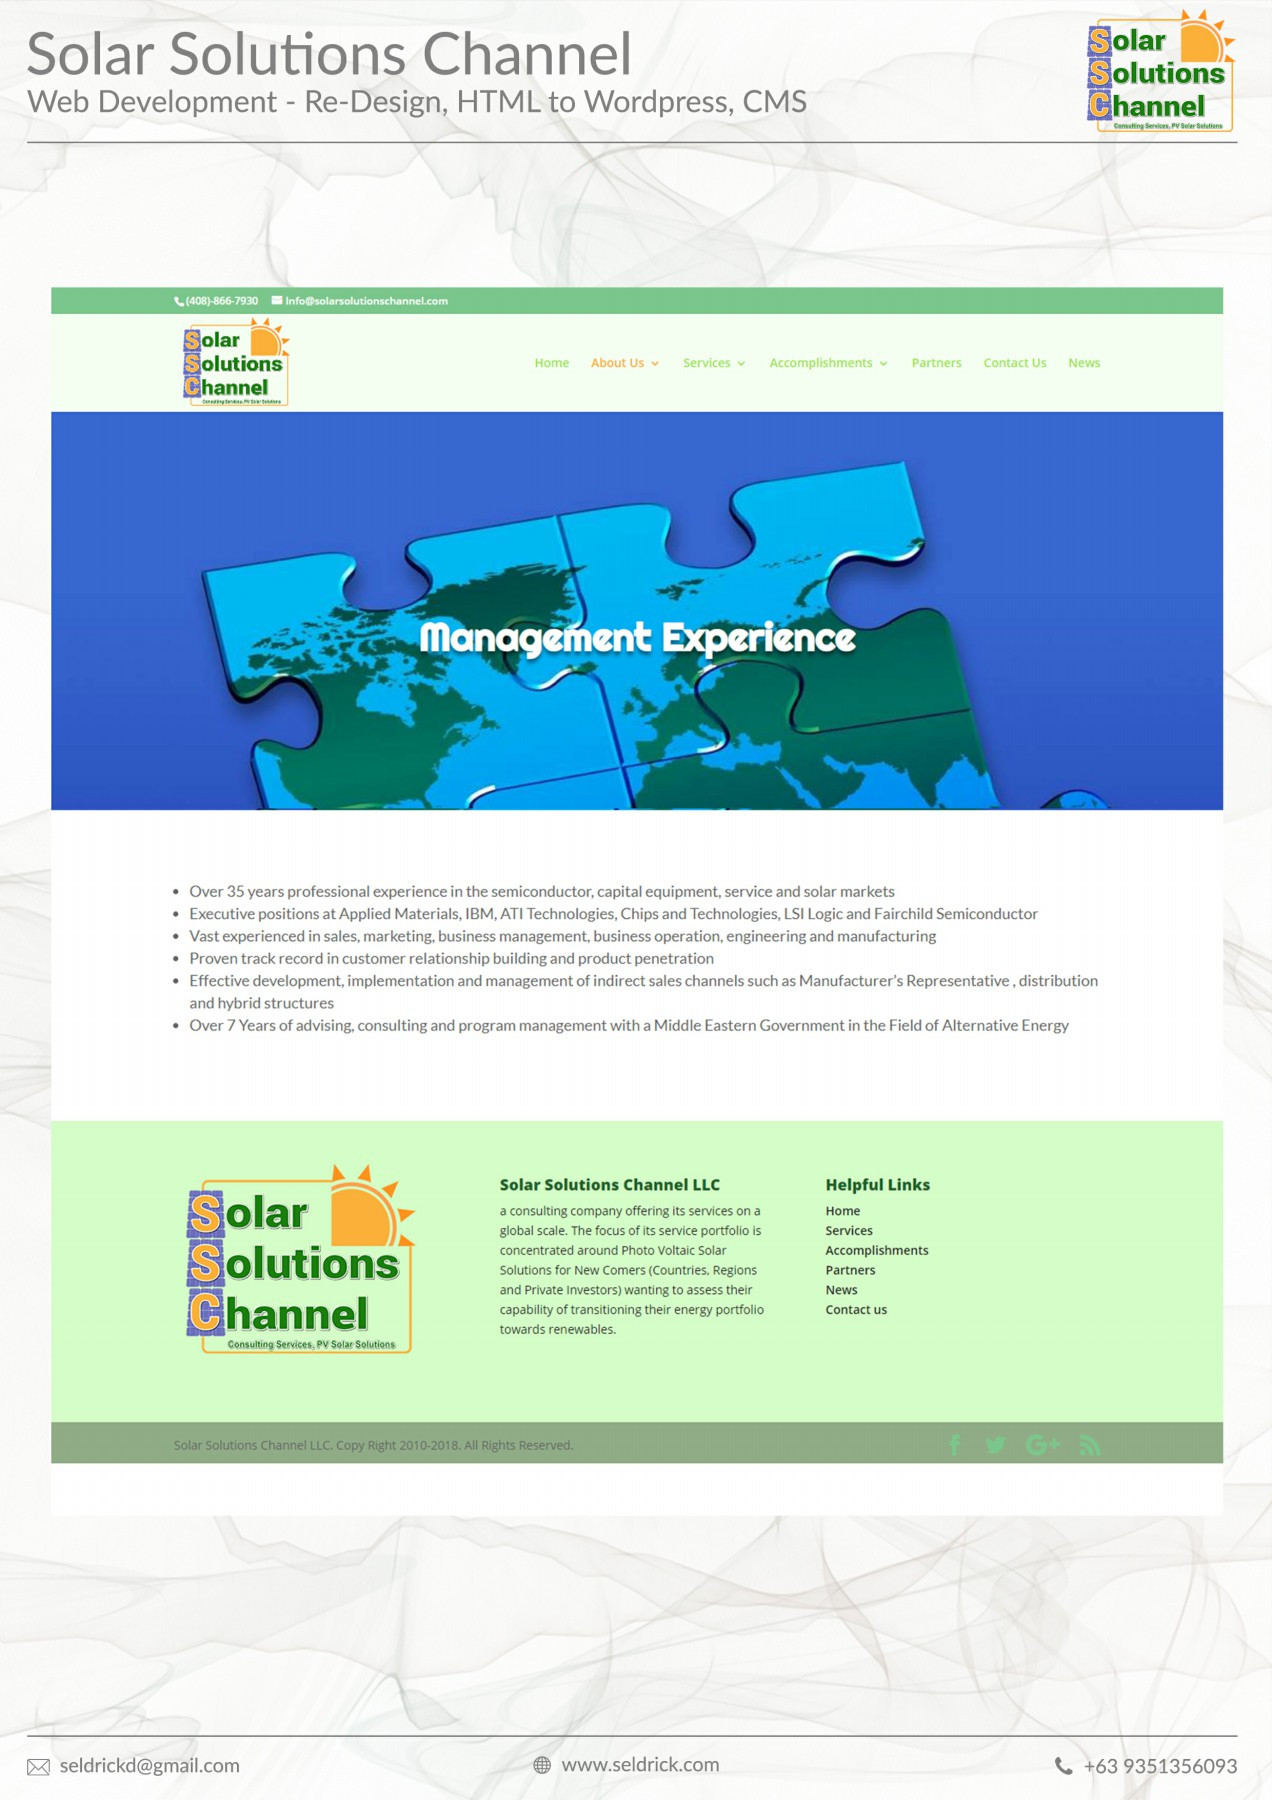 Small-ssc-website-page-3